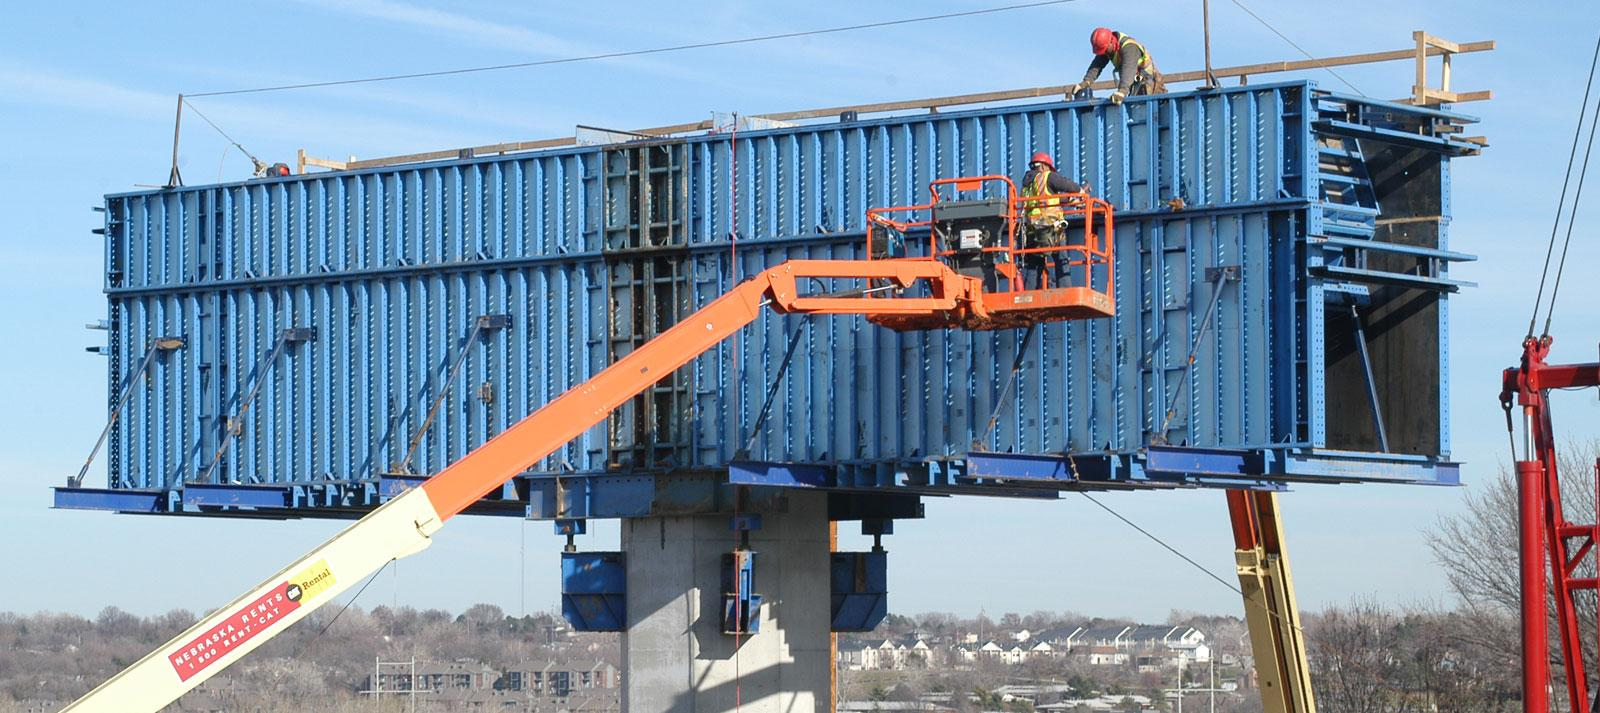 Girder Wall Images - Reverse Search